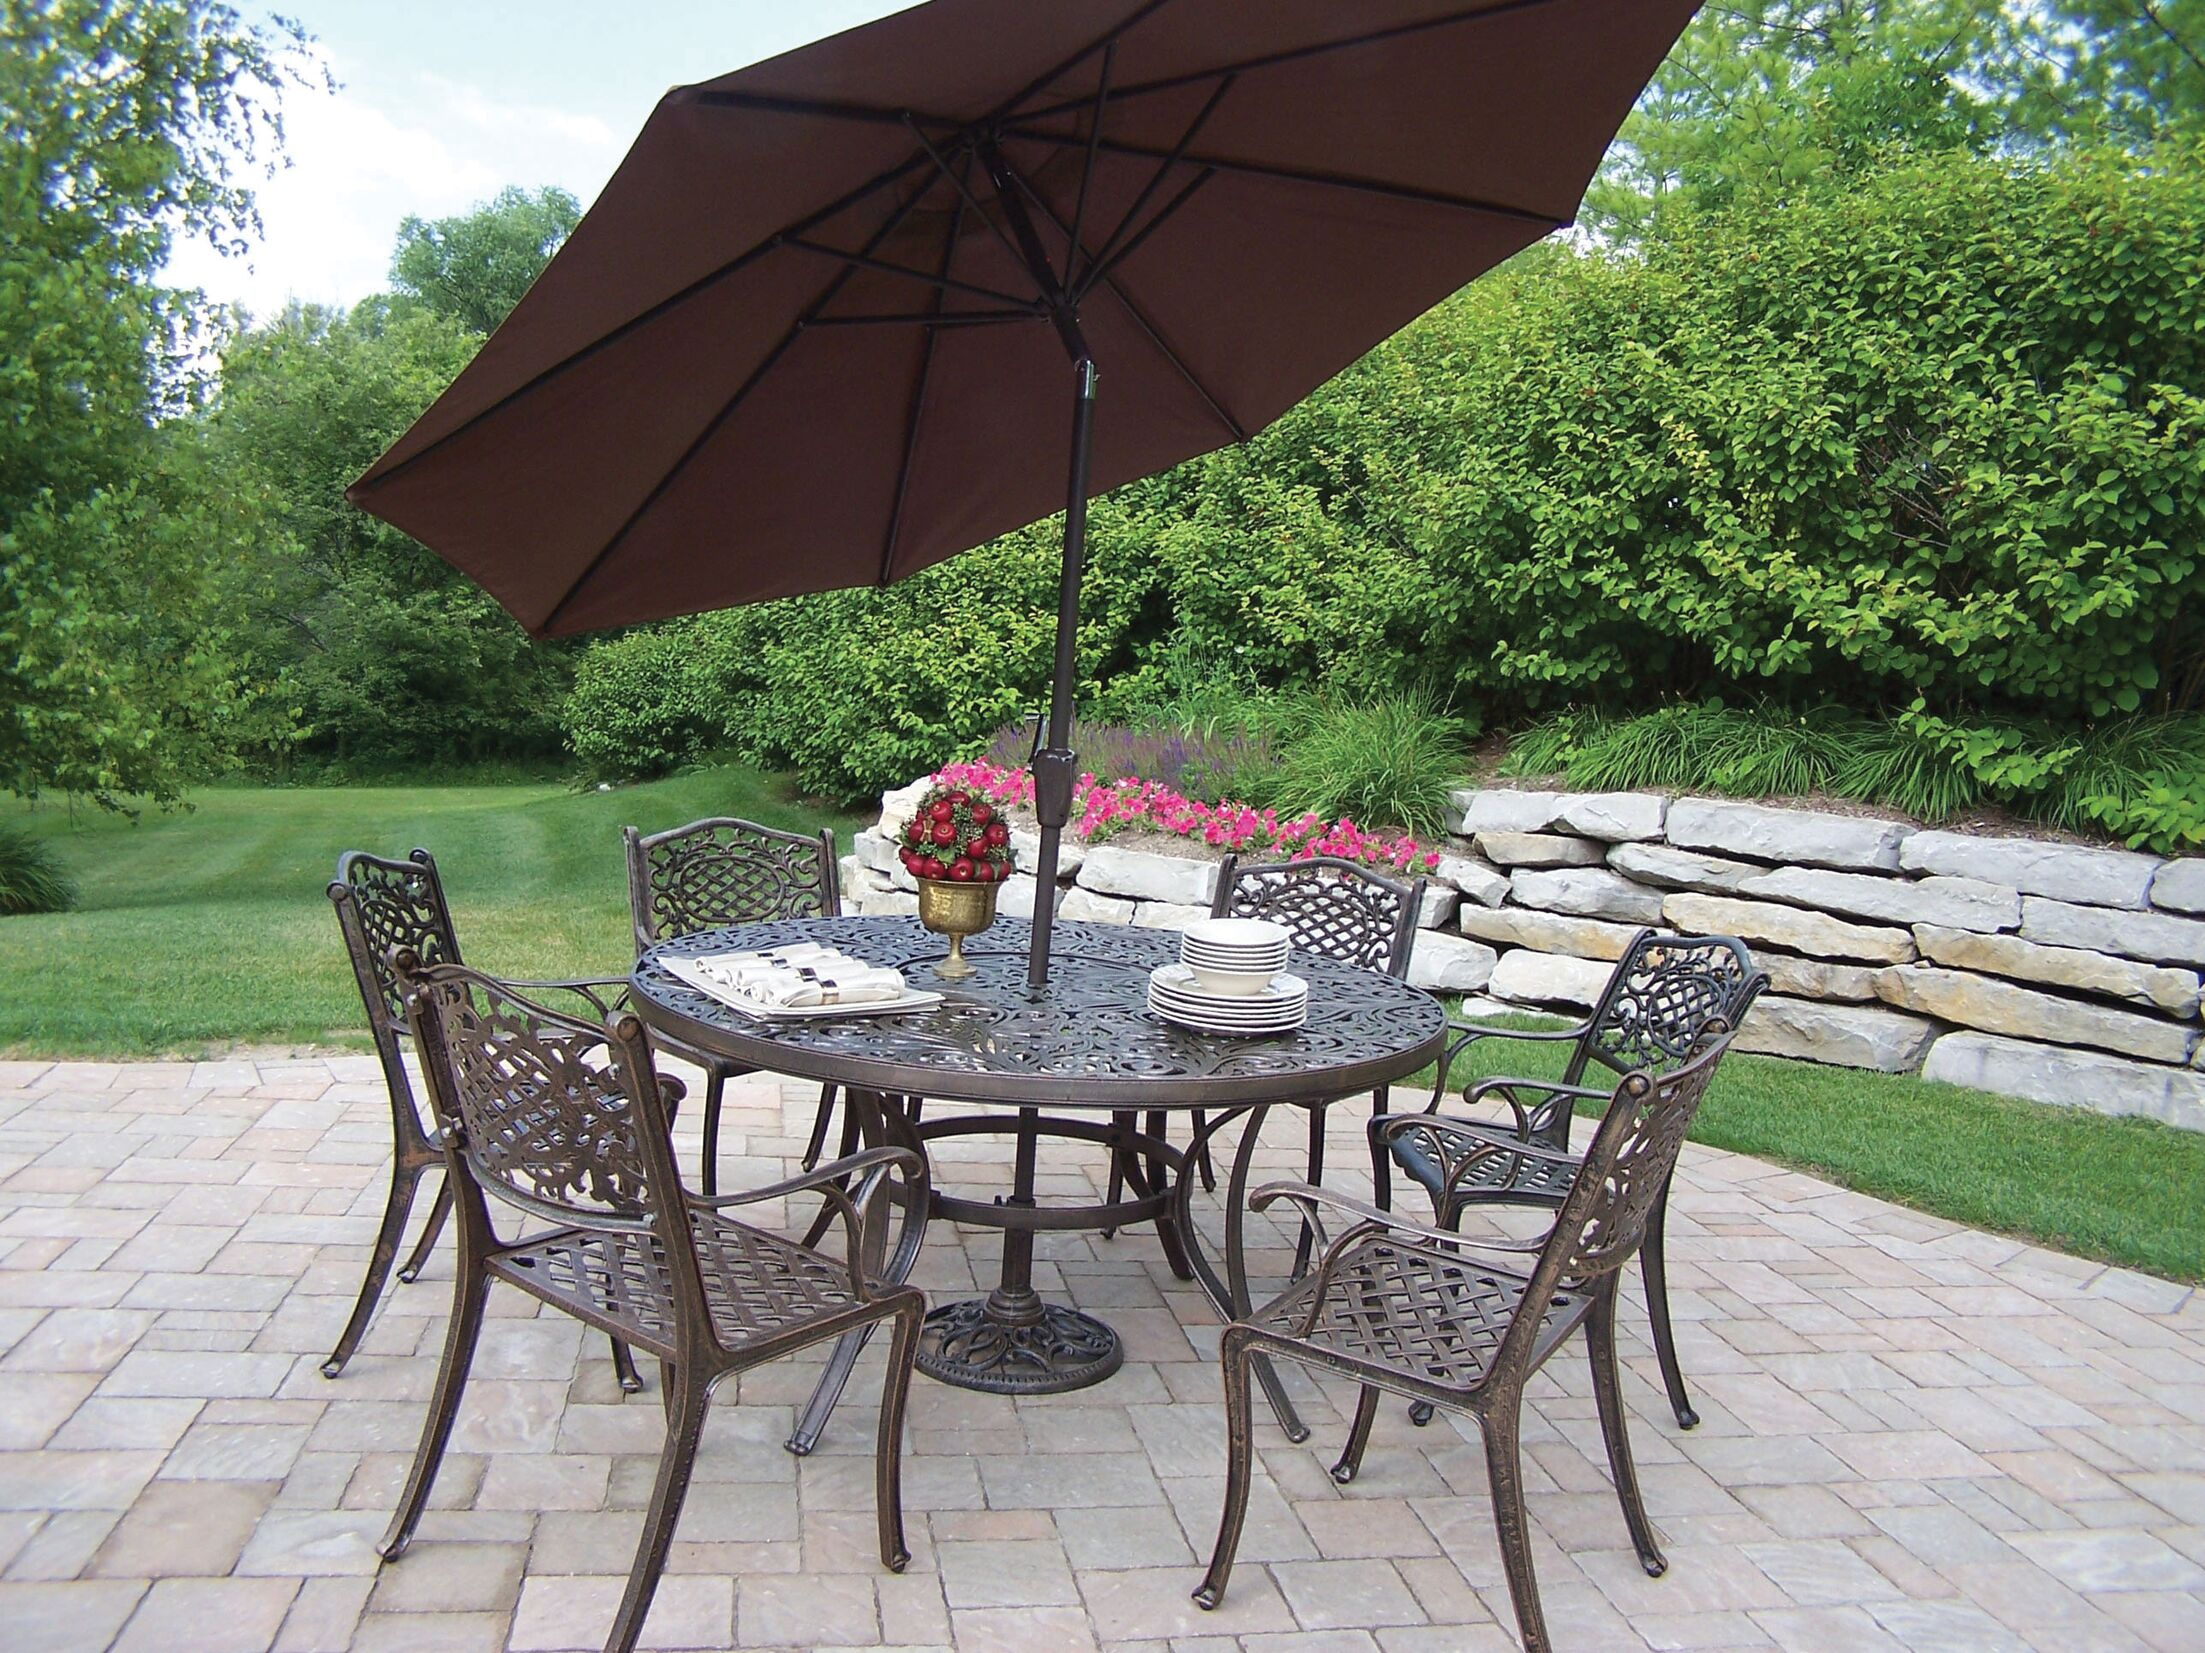 Mississippi Dining Set with Umbrella Cushion: Without